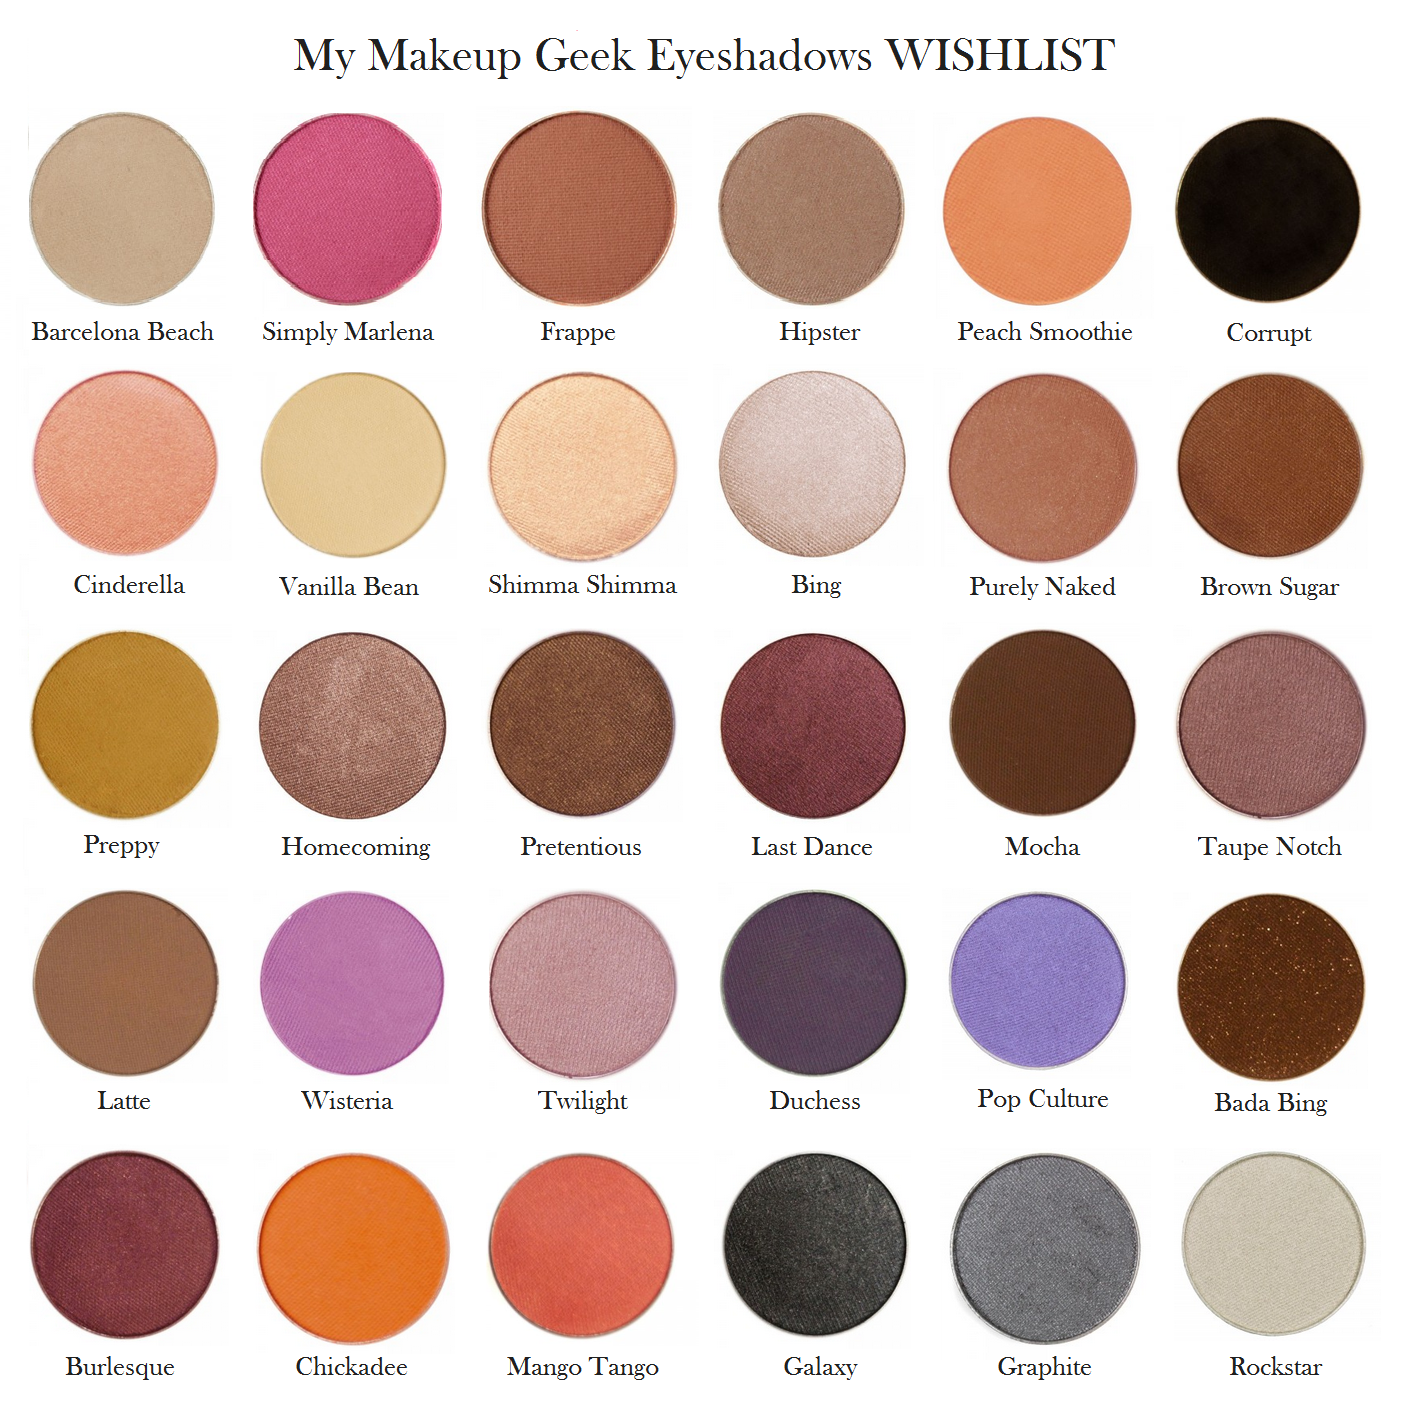 My makeupgeek eyeshadow wishlist ... I already have 9 and 30 to go .. Plus the pigments! Love @Makeup Geek